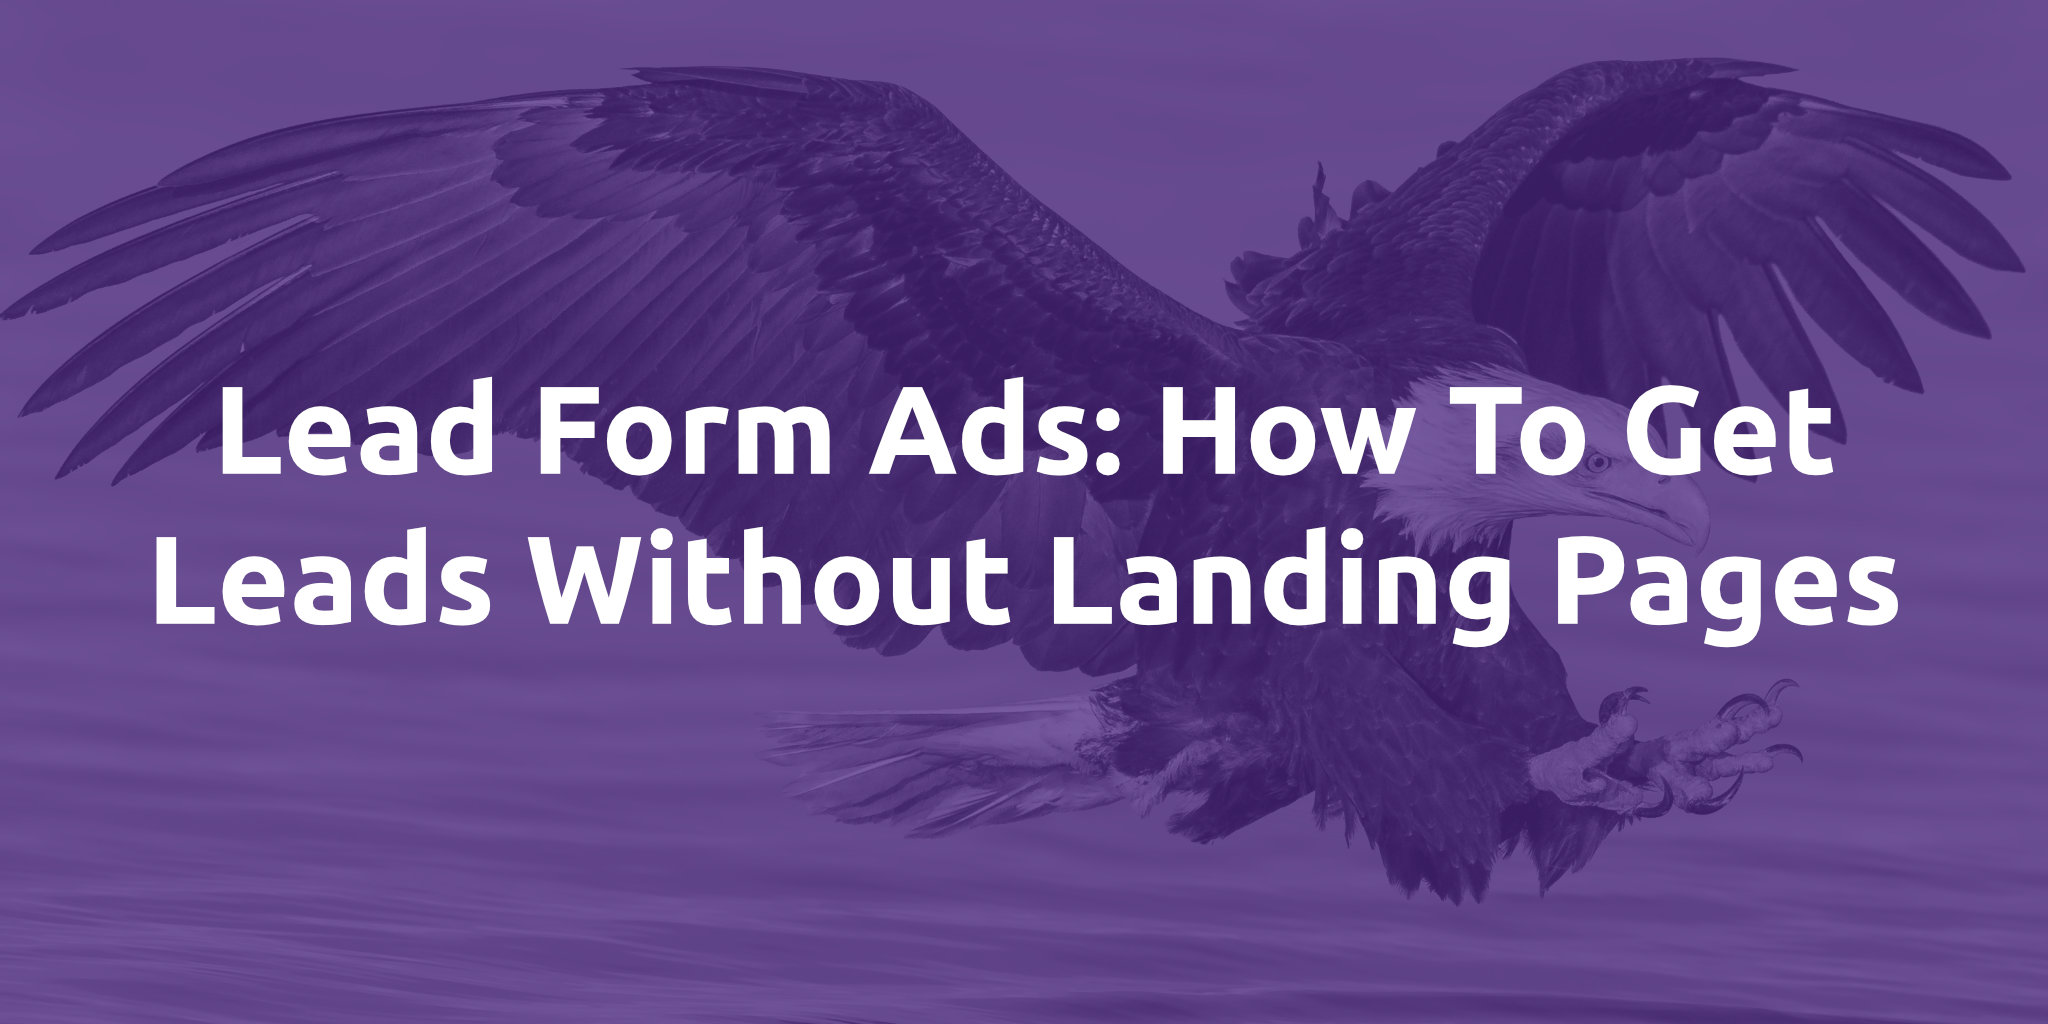 lead form ads: how to get leads without landing pages